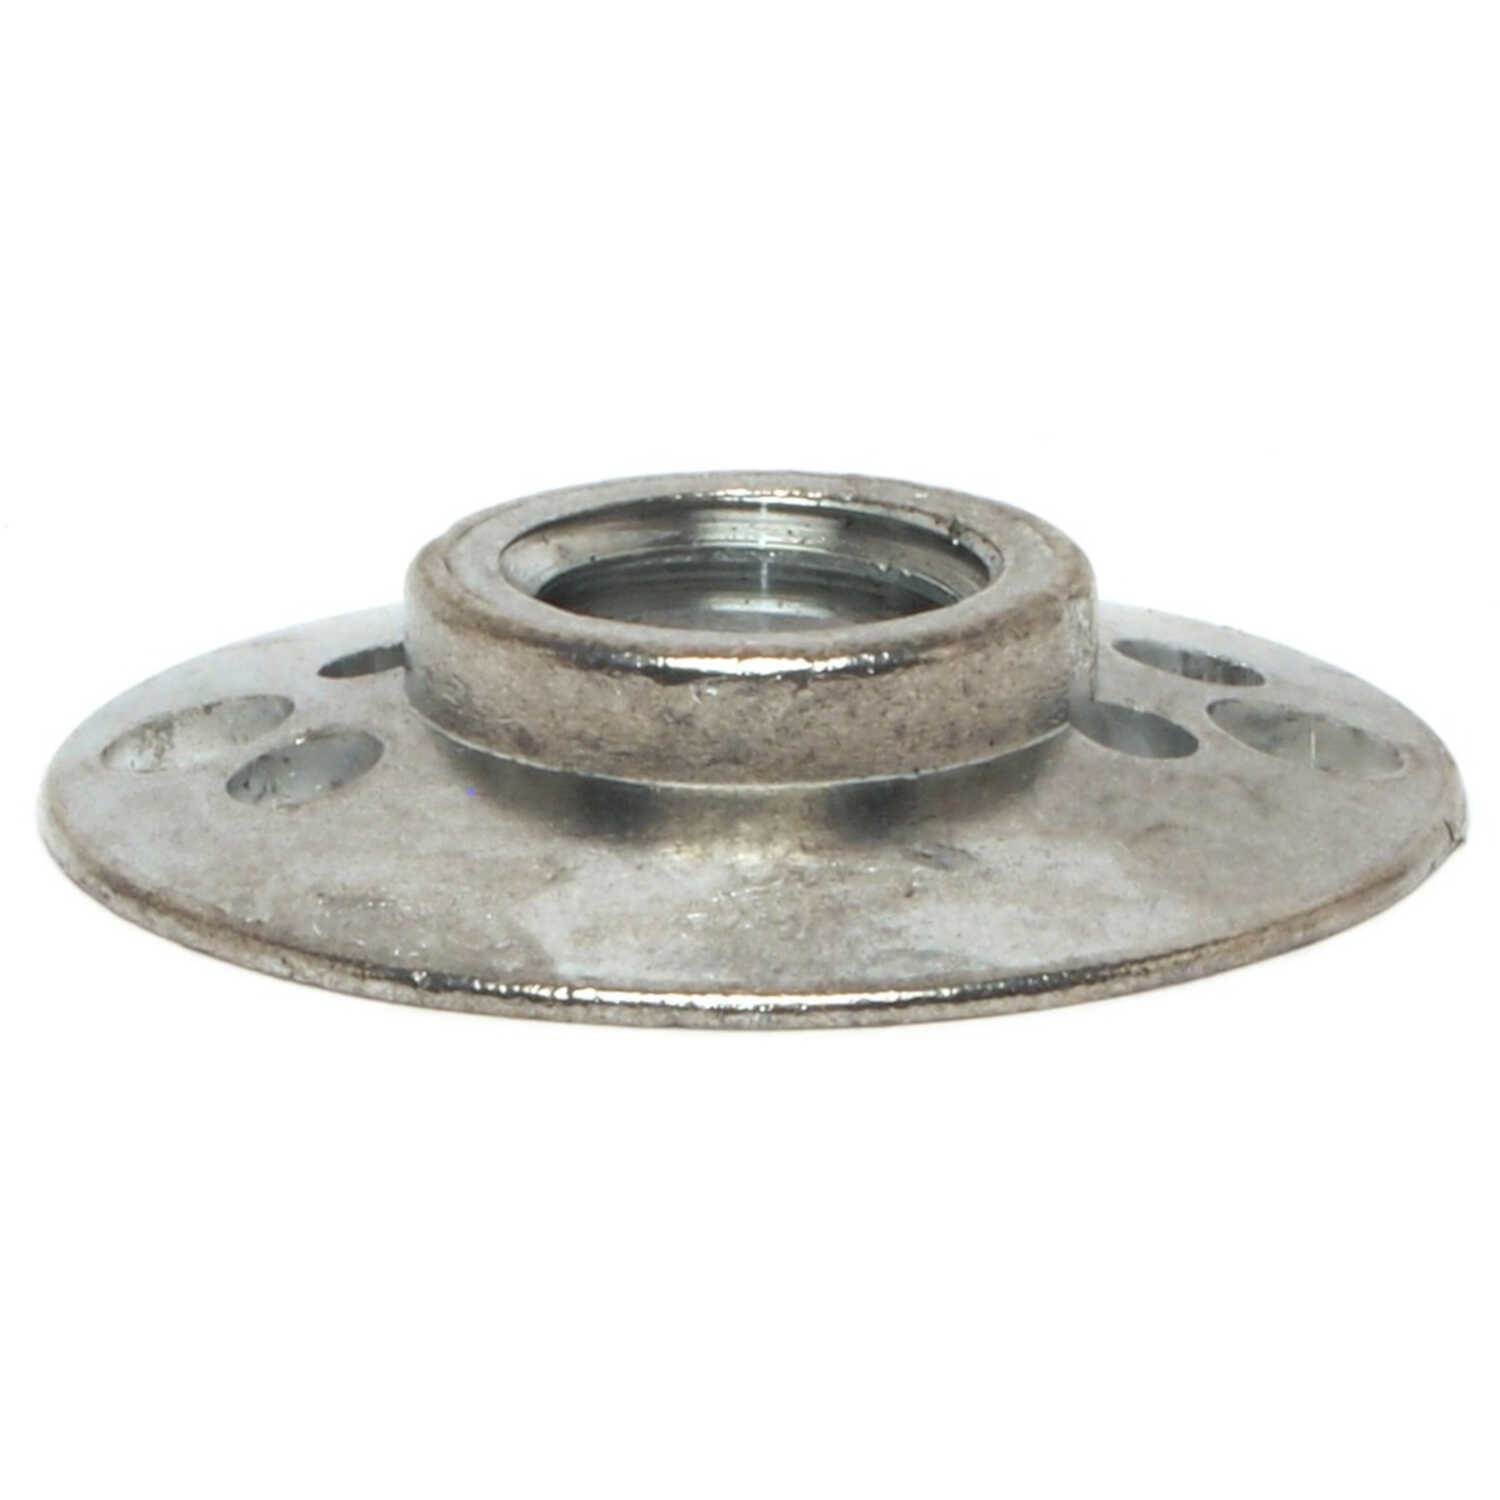 Forney  11 mm Dia. Metal  Spindle Nut  5/8 in.  20000 rpm 1 pc.